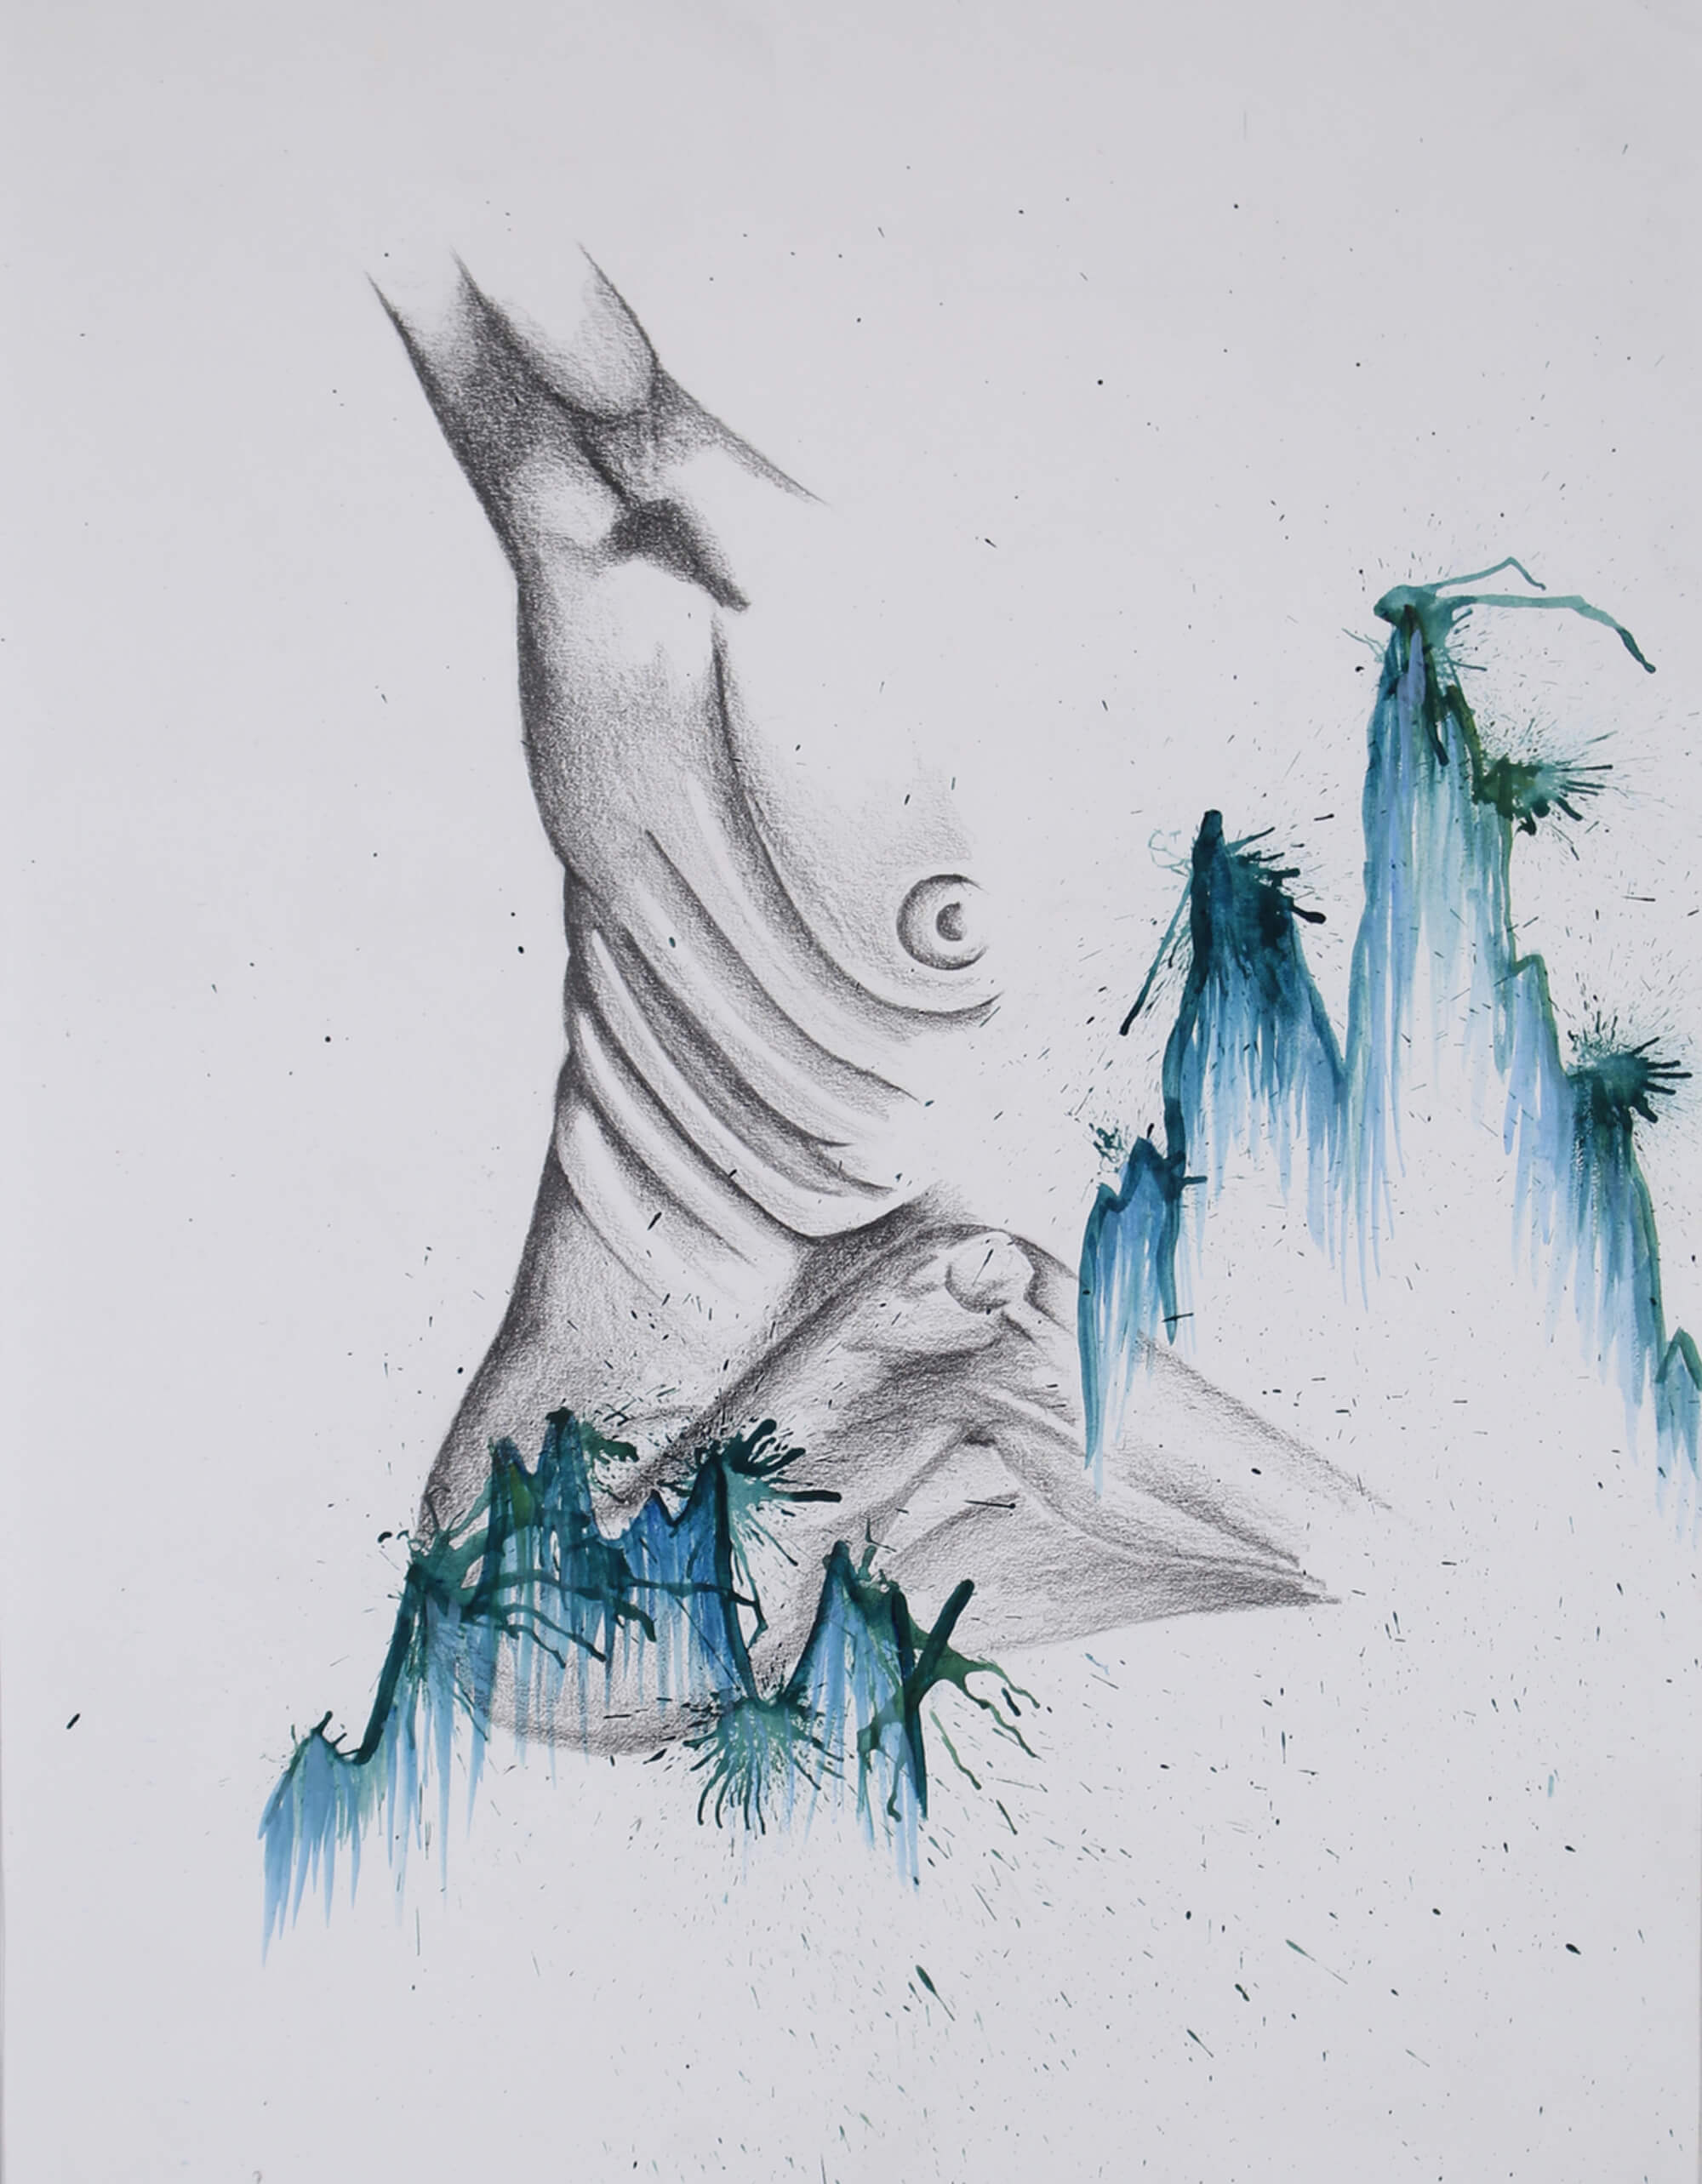 Graphite and watercolor drawing of naked human body rising up by Nichole Ortiz